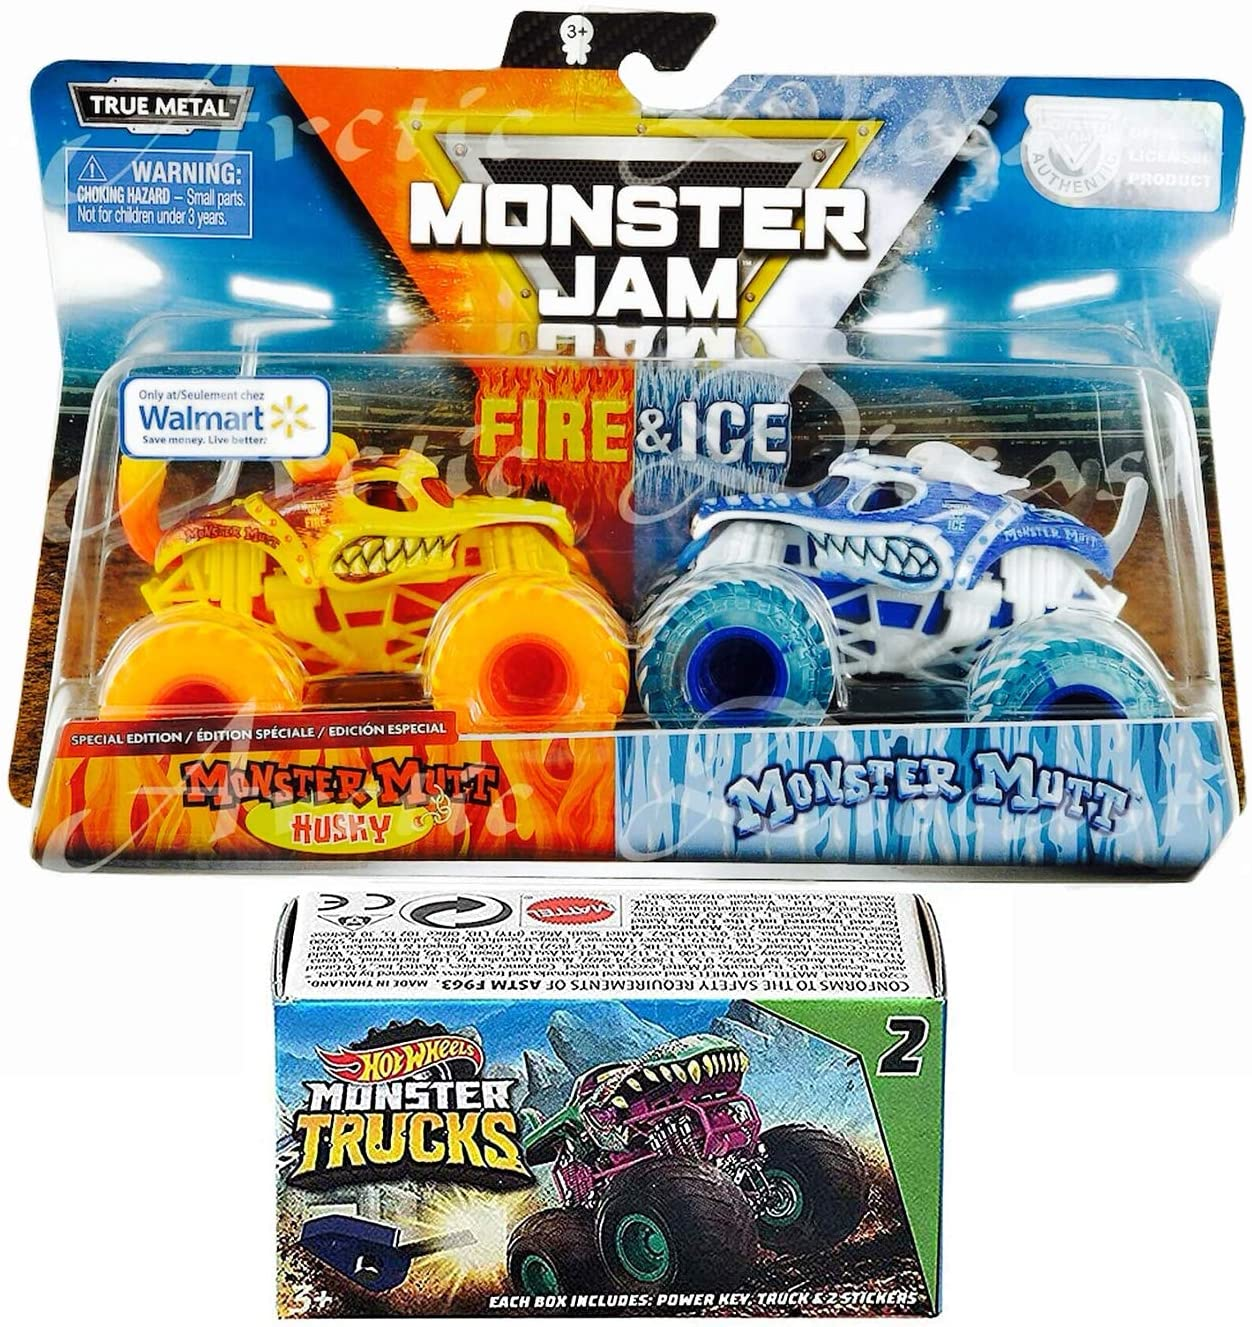 Husky Fire Mutt Truck Exclusive Edition & Blue Ice Action Jam Giant Official 2 Pack Pickup Bundled with Blind Box Series Mini Monster with Power Key Launcher 3 Items